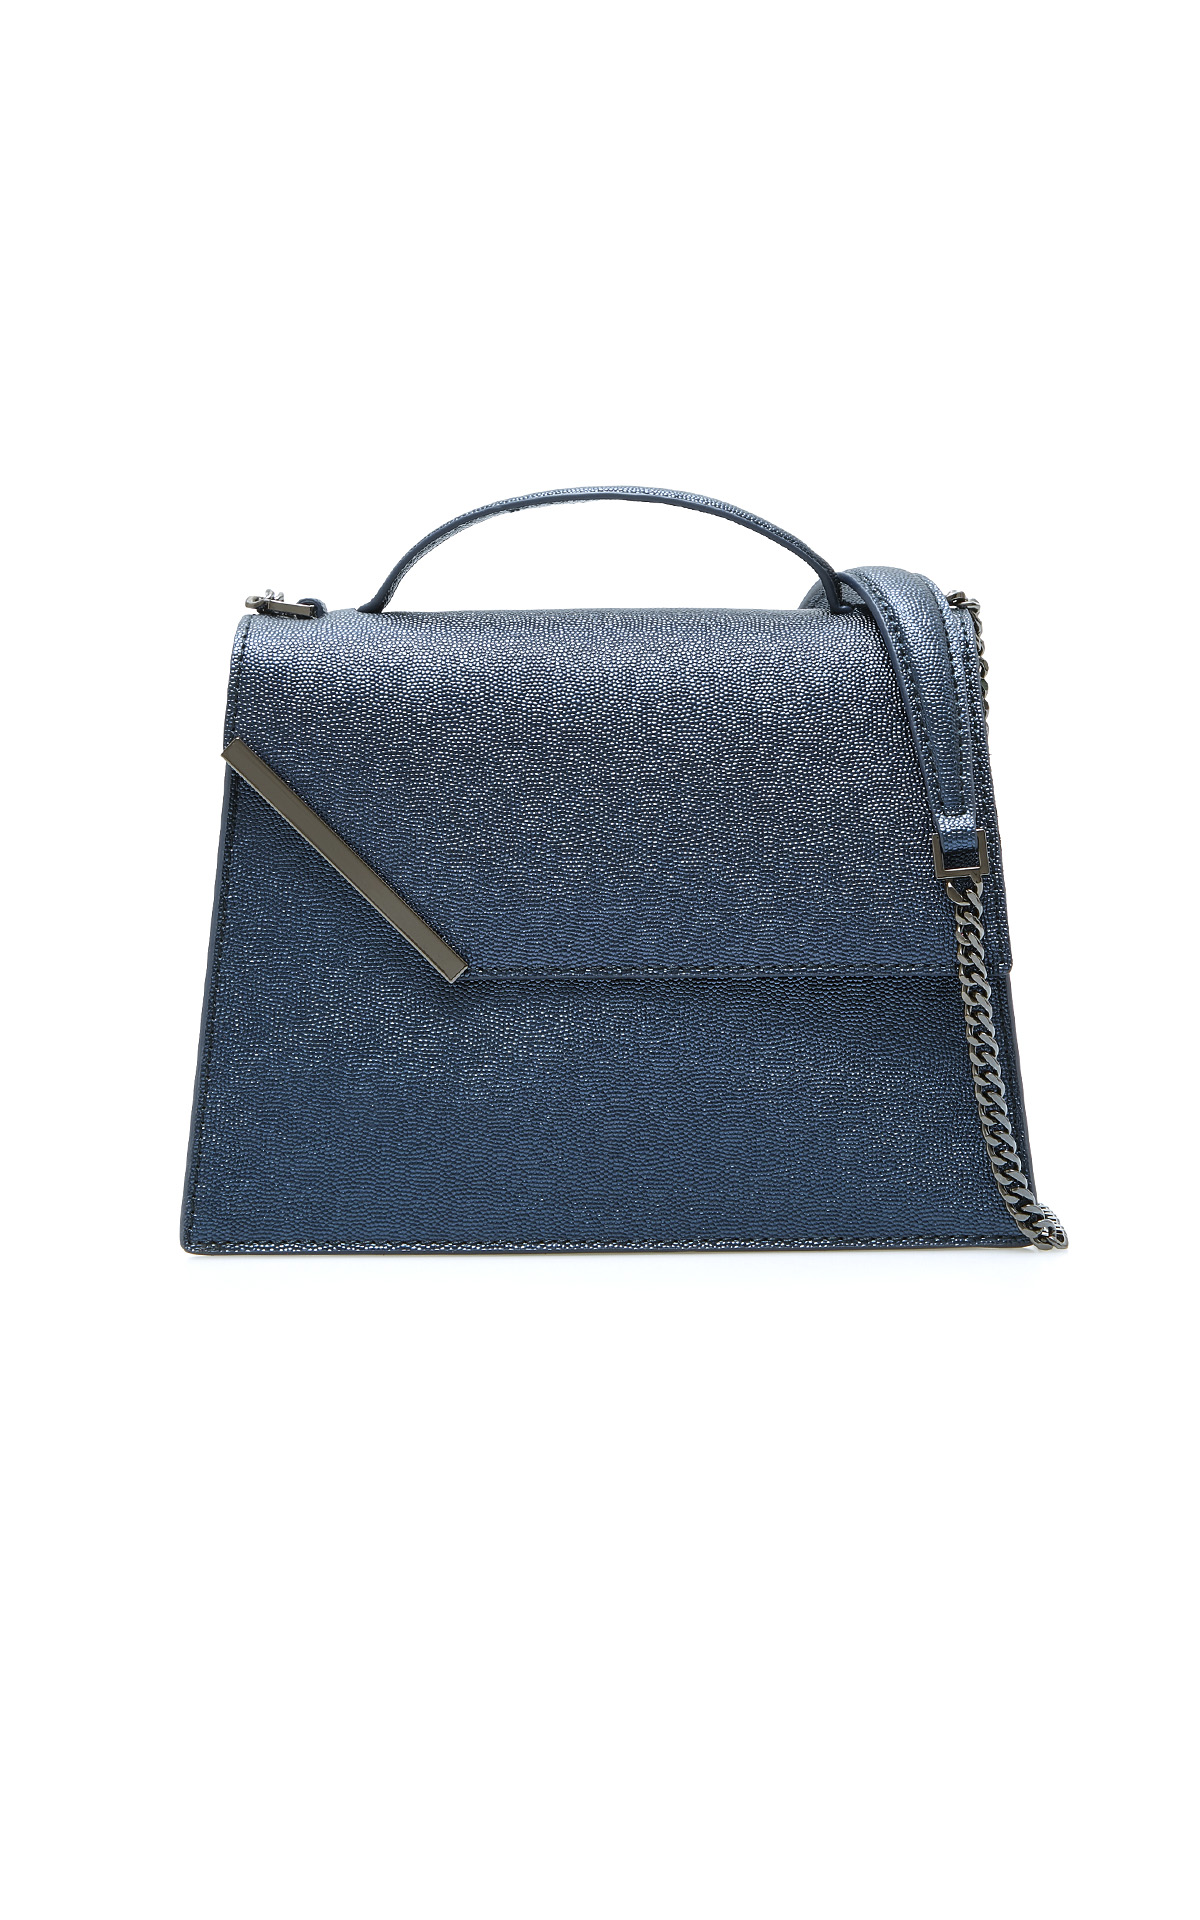 Blue leather bag Purificacion Garcia